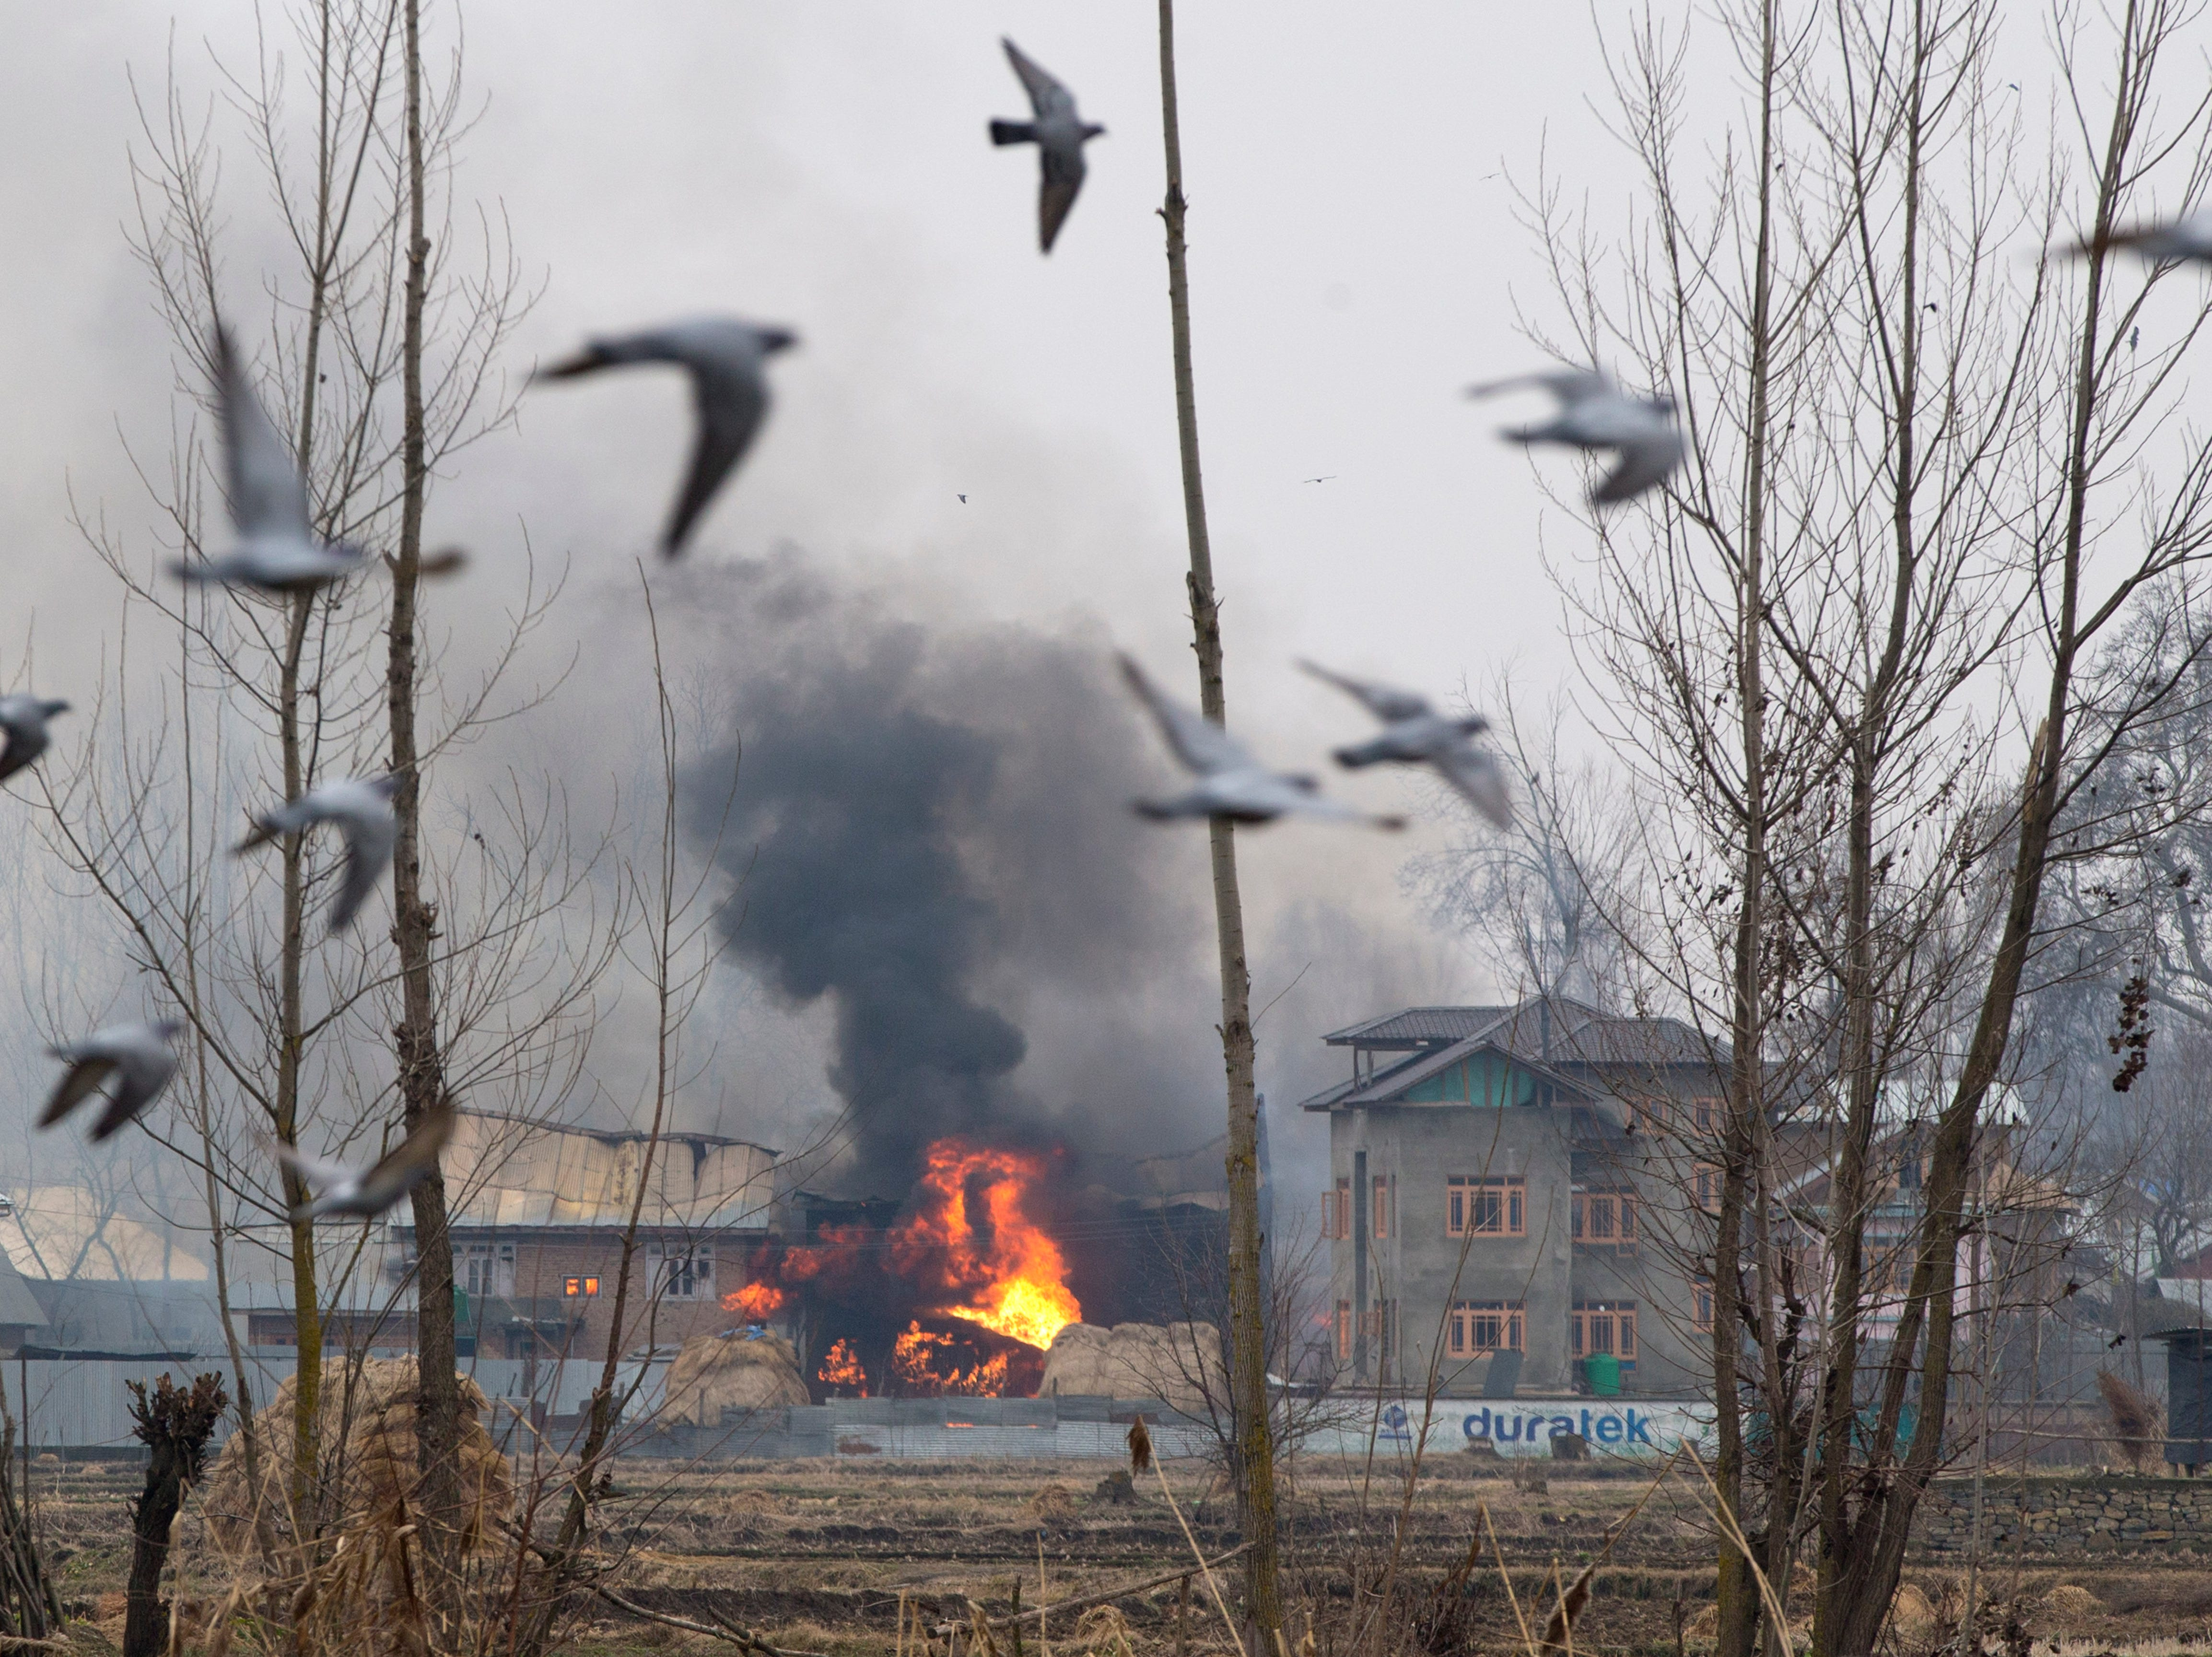 Flames and smoke billows from a residential building where militants are suspected to have taken refuge during a gun battle in Pulwama, south of Srinagar, Indian controlled Kashmir, Monday, Feb. 18, 2019. Tensions continued to rise in the aftermath of a suicide attack in disputed Kashmir, with seven people killed Monday in a gunbattle that broke out as Indian soldiers scoured the area for militants.